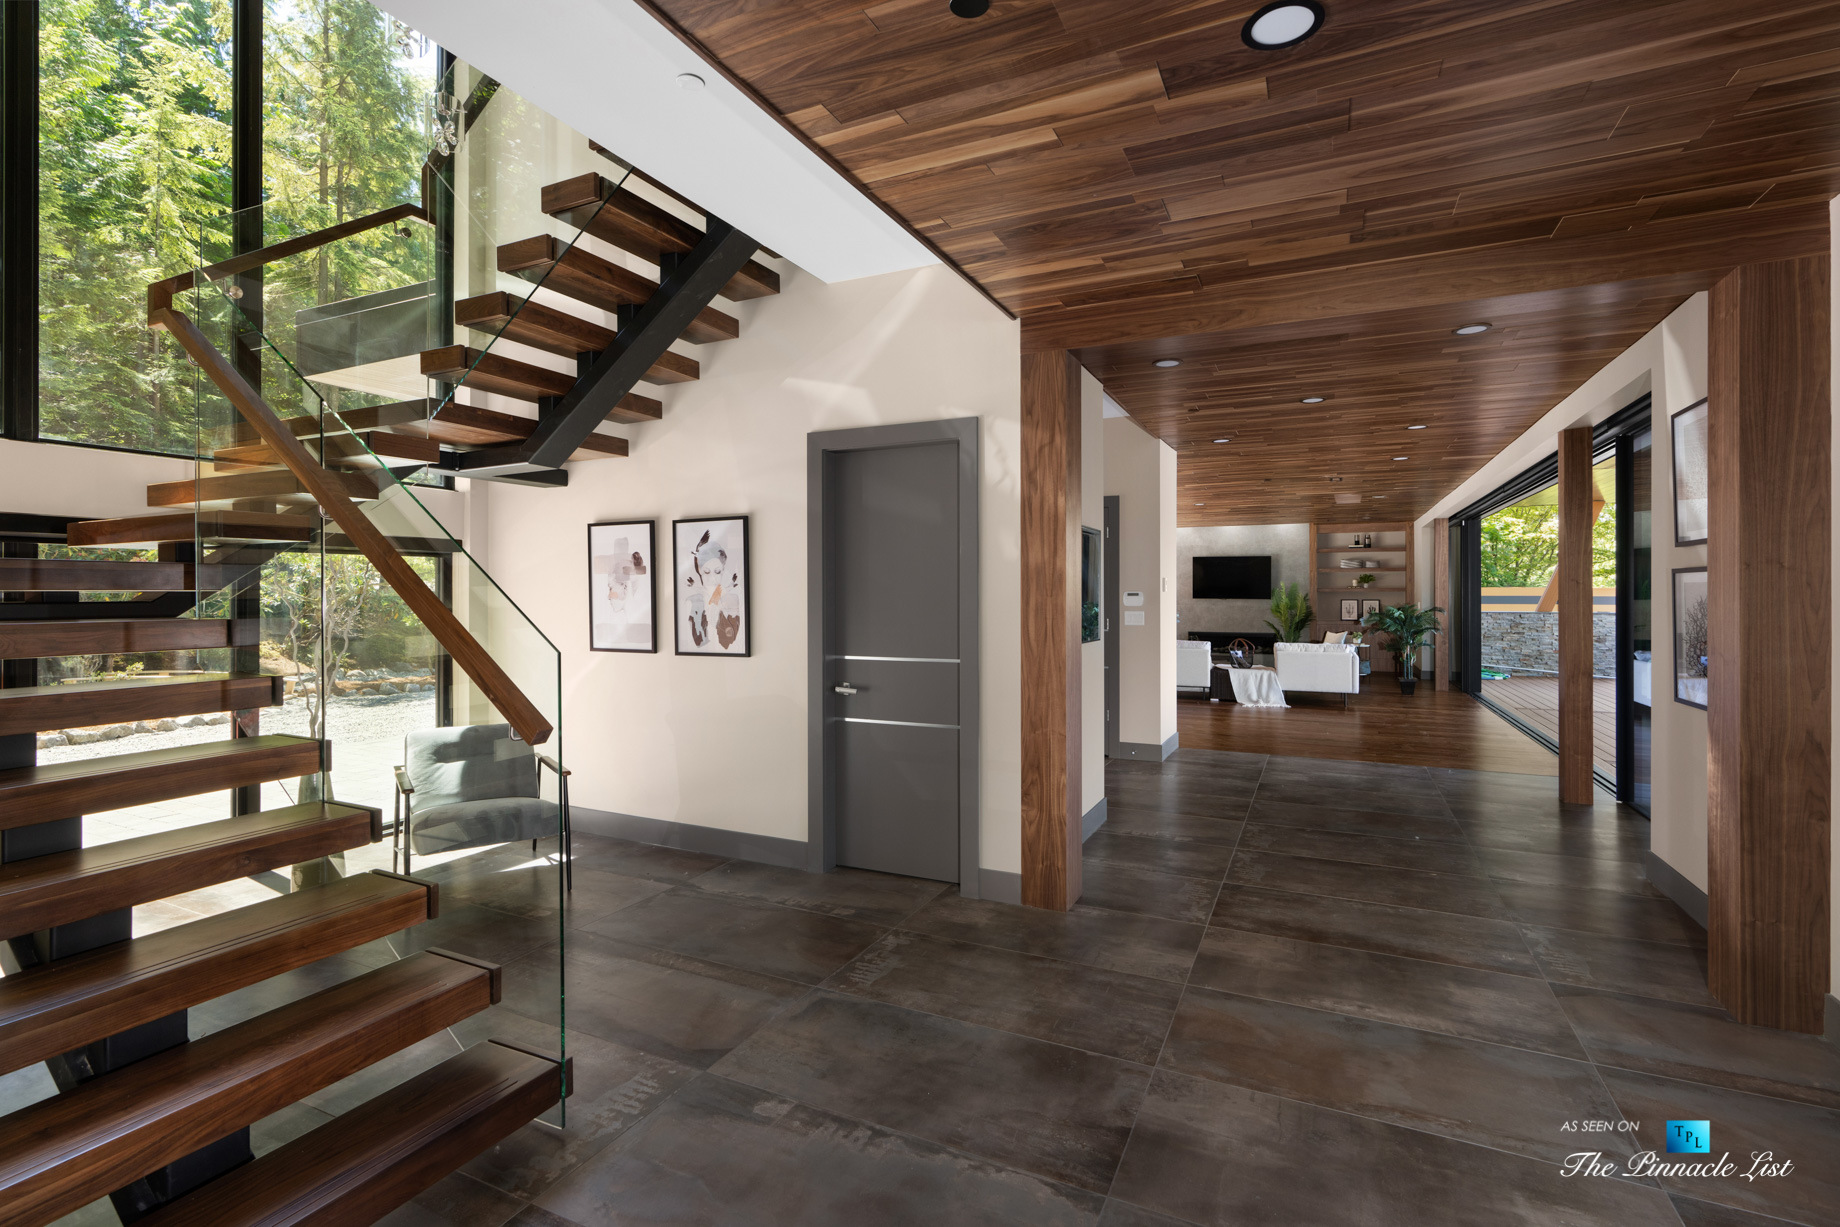 3350 Watson Rd, Belcarra, BC, Canada - Vancouver Luxury Real Estate - Modern Home Open Stairs and Hallway